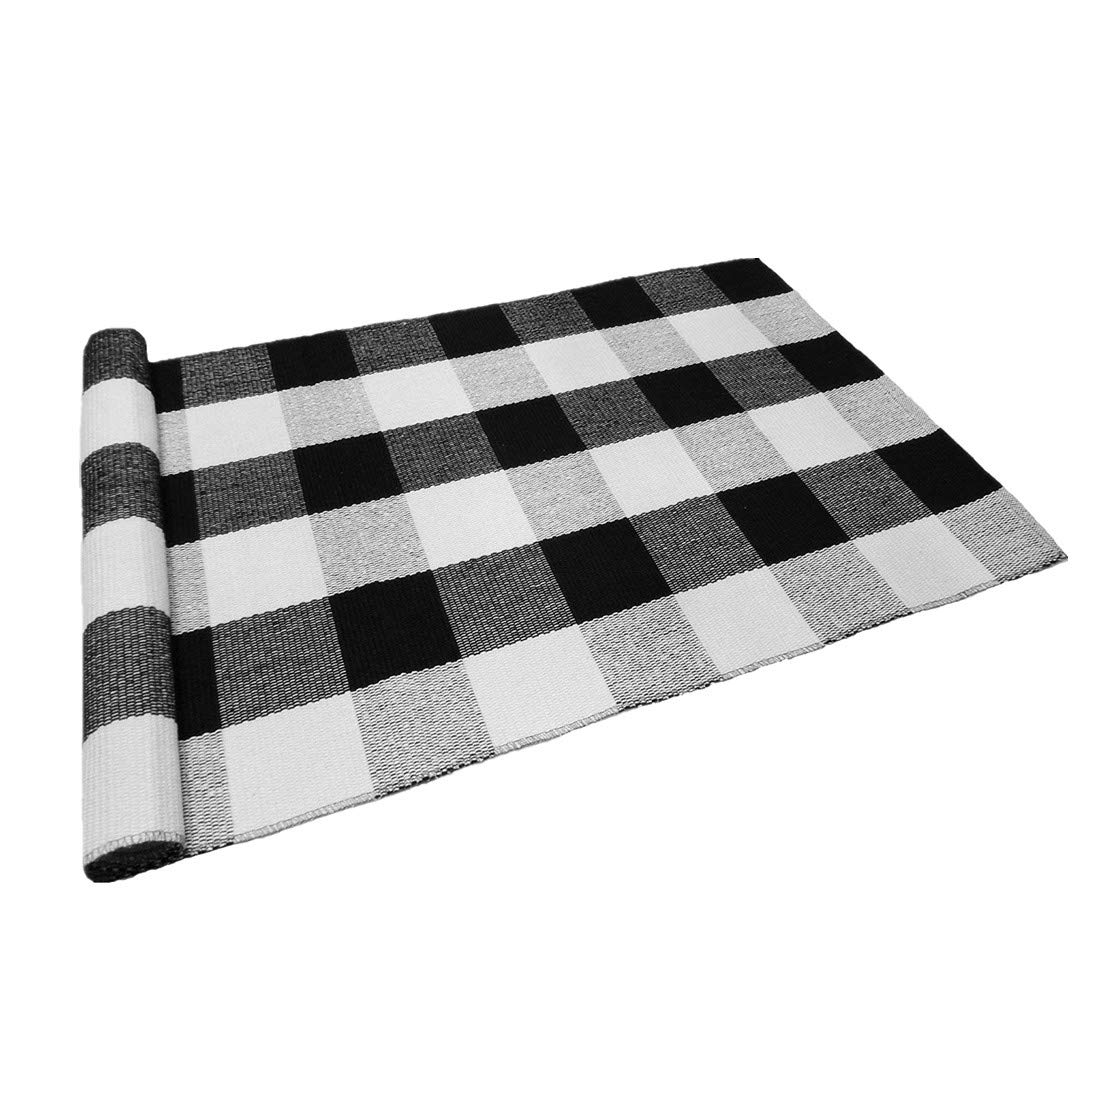 Levinis Buffalo Checkered Kitchen Runner Rug 100% Cotton Rugs Black/White Plaid Floor Rug for Porch/Kitchen/Entry Way/Laundry Room/Bedroom/Bathroom 23.6''x51.2''